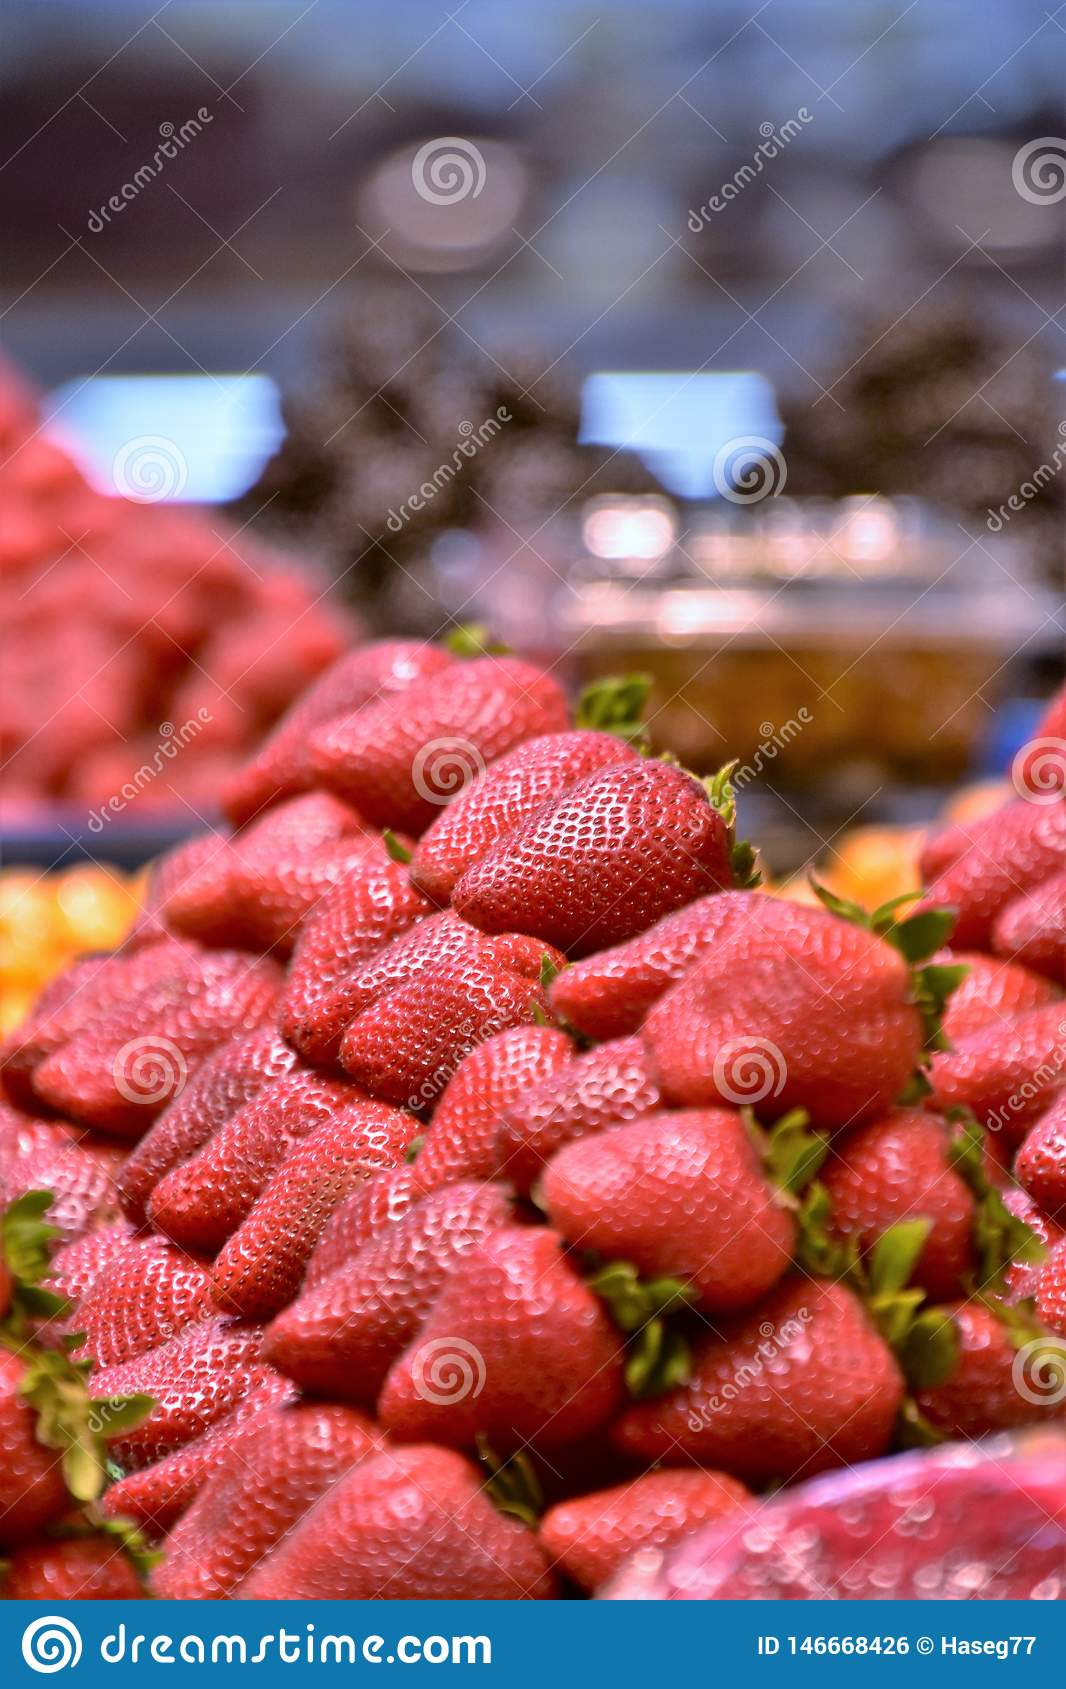 Pile of Strawberries on the pallet.